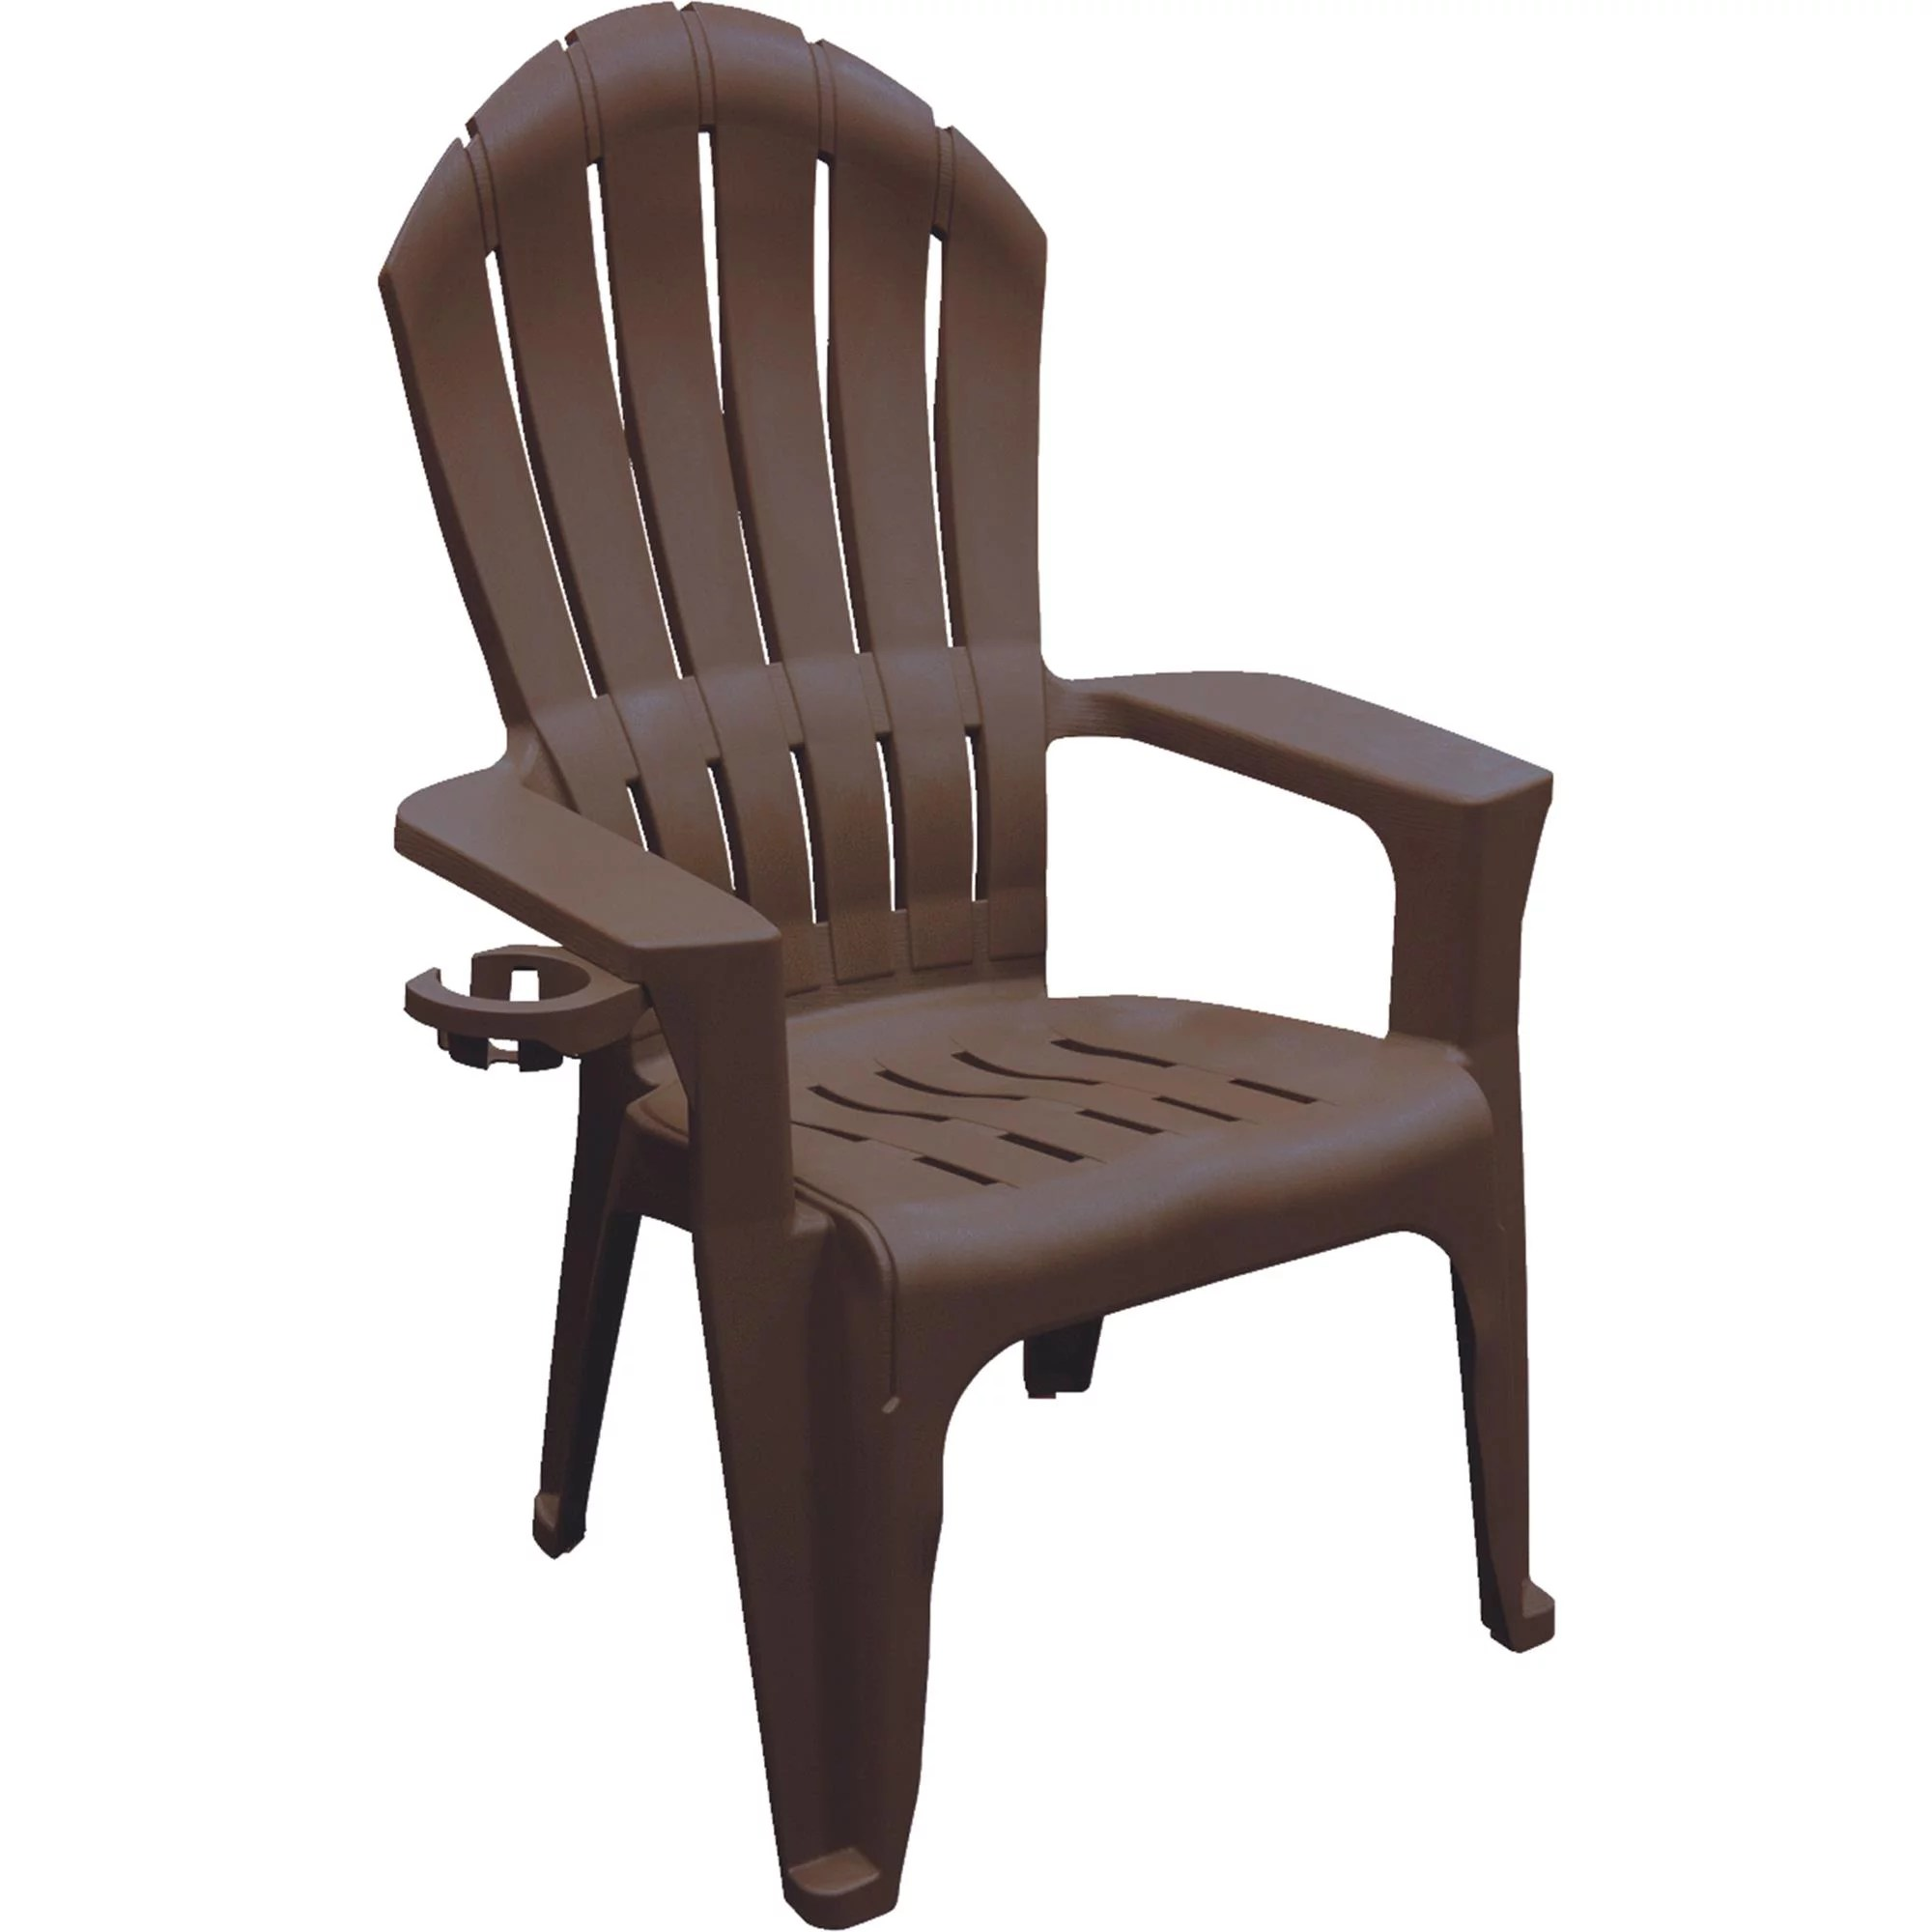 Adams Resin Adirondack Chairs Adams Big Easy Adirondack Chair Walmart